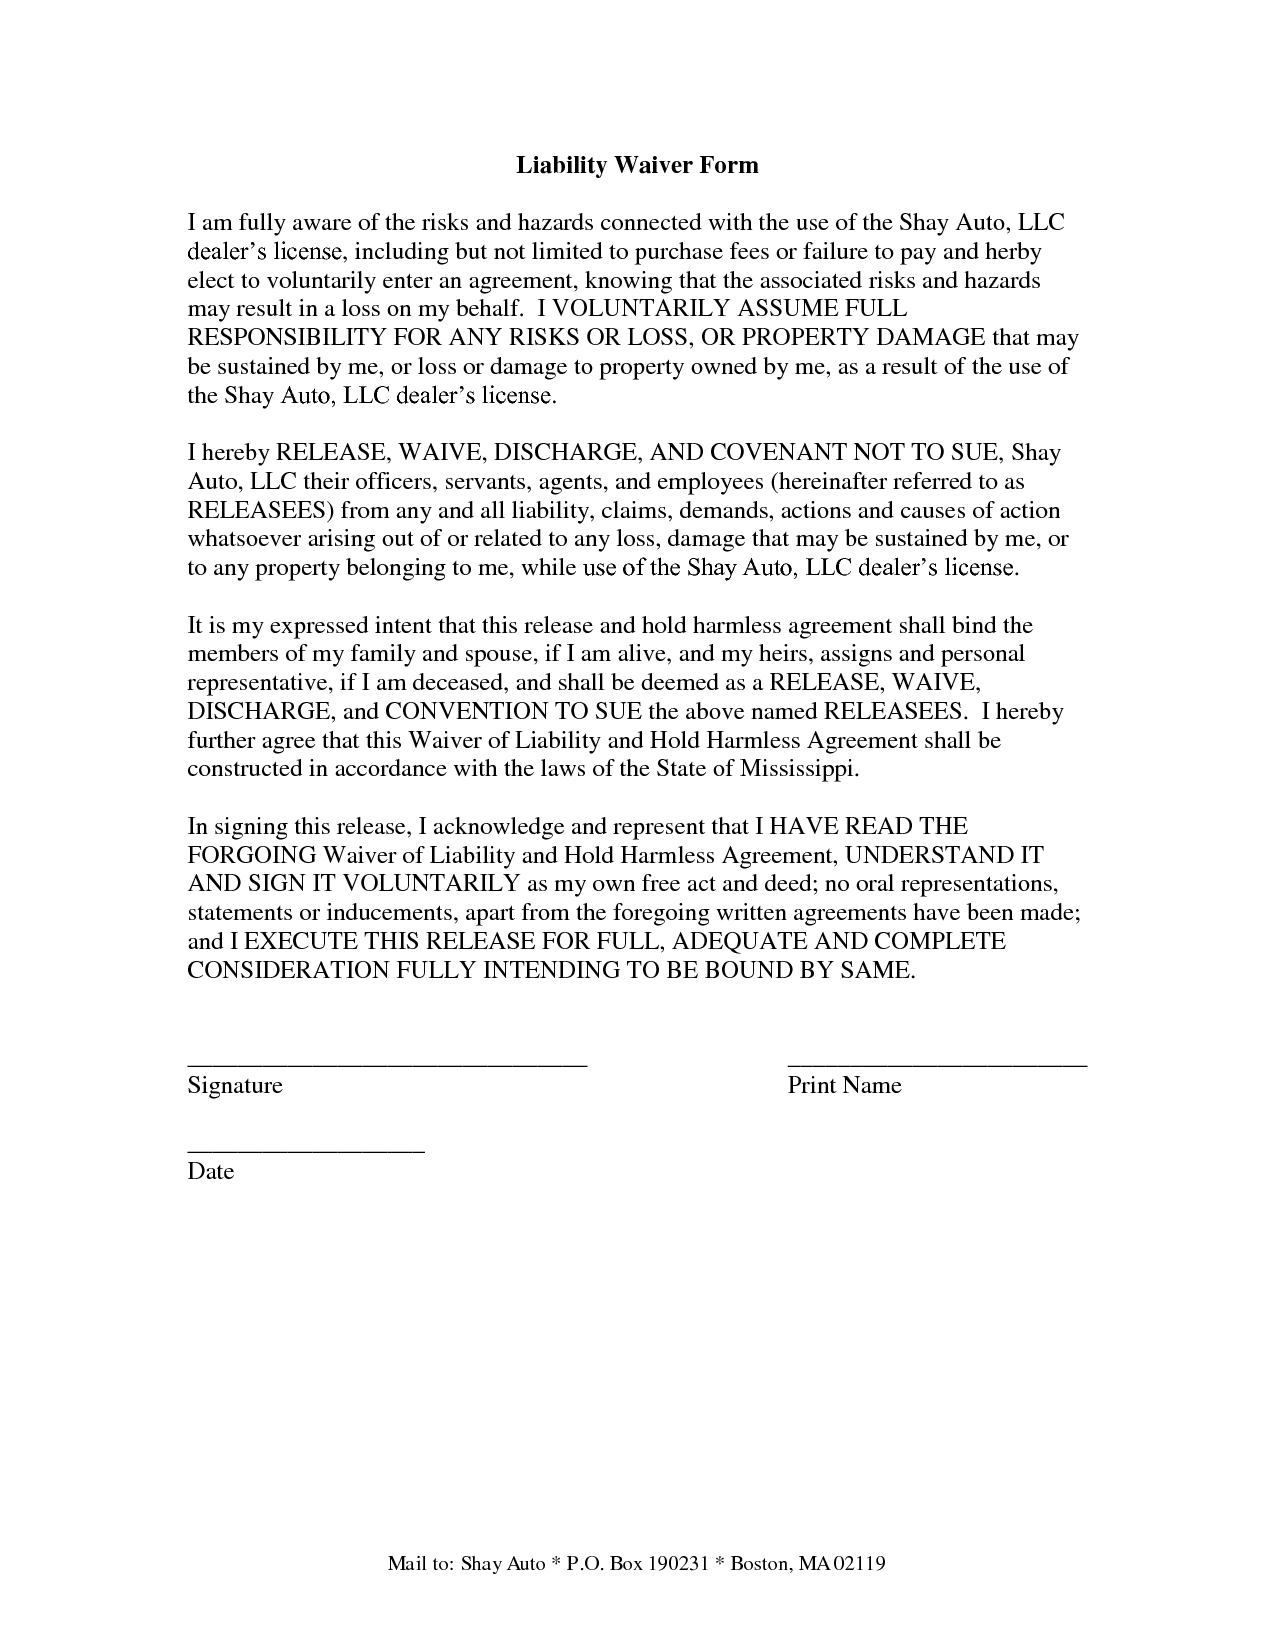 Waiver Of Liability Sample Free Printable Documents Liability Waiver Liability General Liability